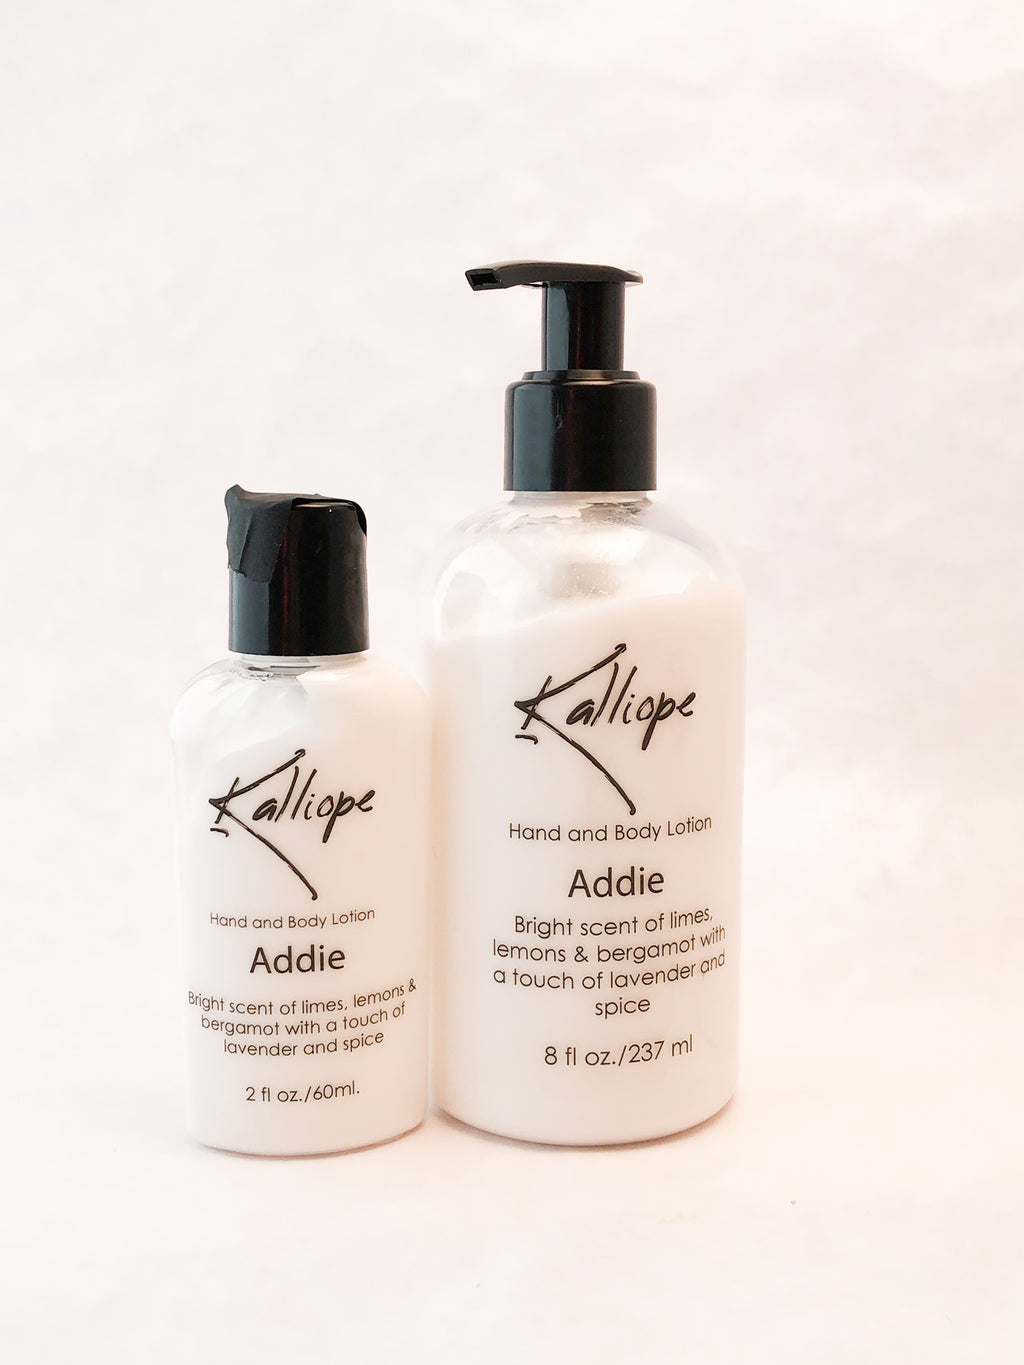 Addie lotion is rich and moisturizing with a bright citrus scent